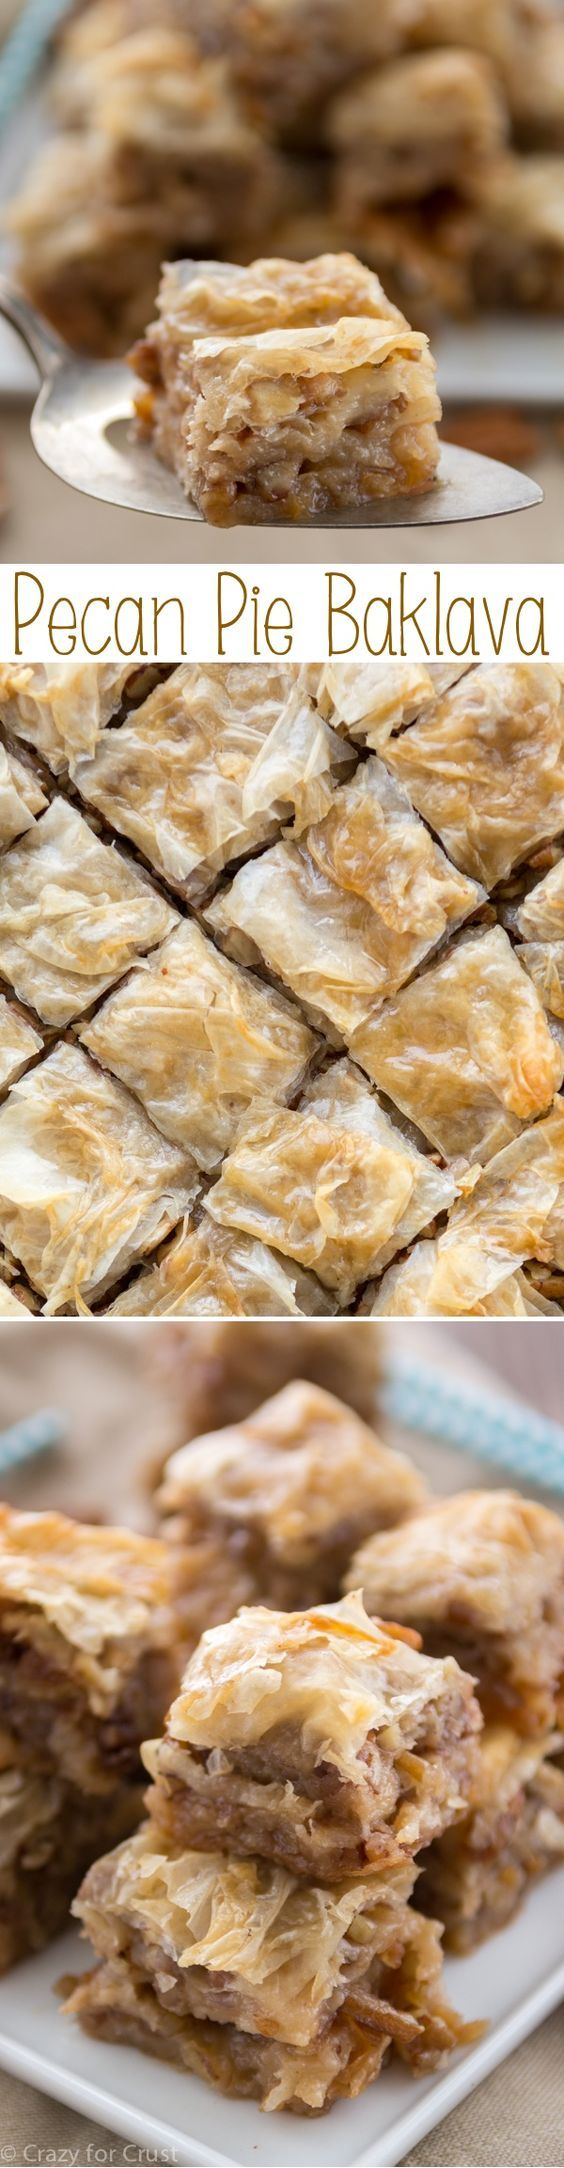 Pecan Pie Baklava has layers of flaky phyllo with pecans, butter, and a pecan pie flavored syrup!: